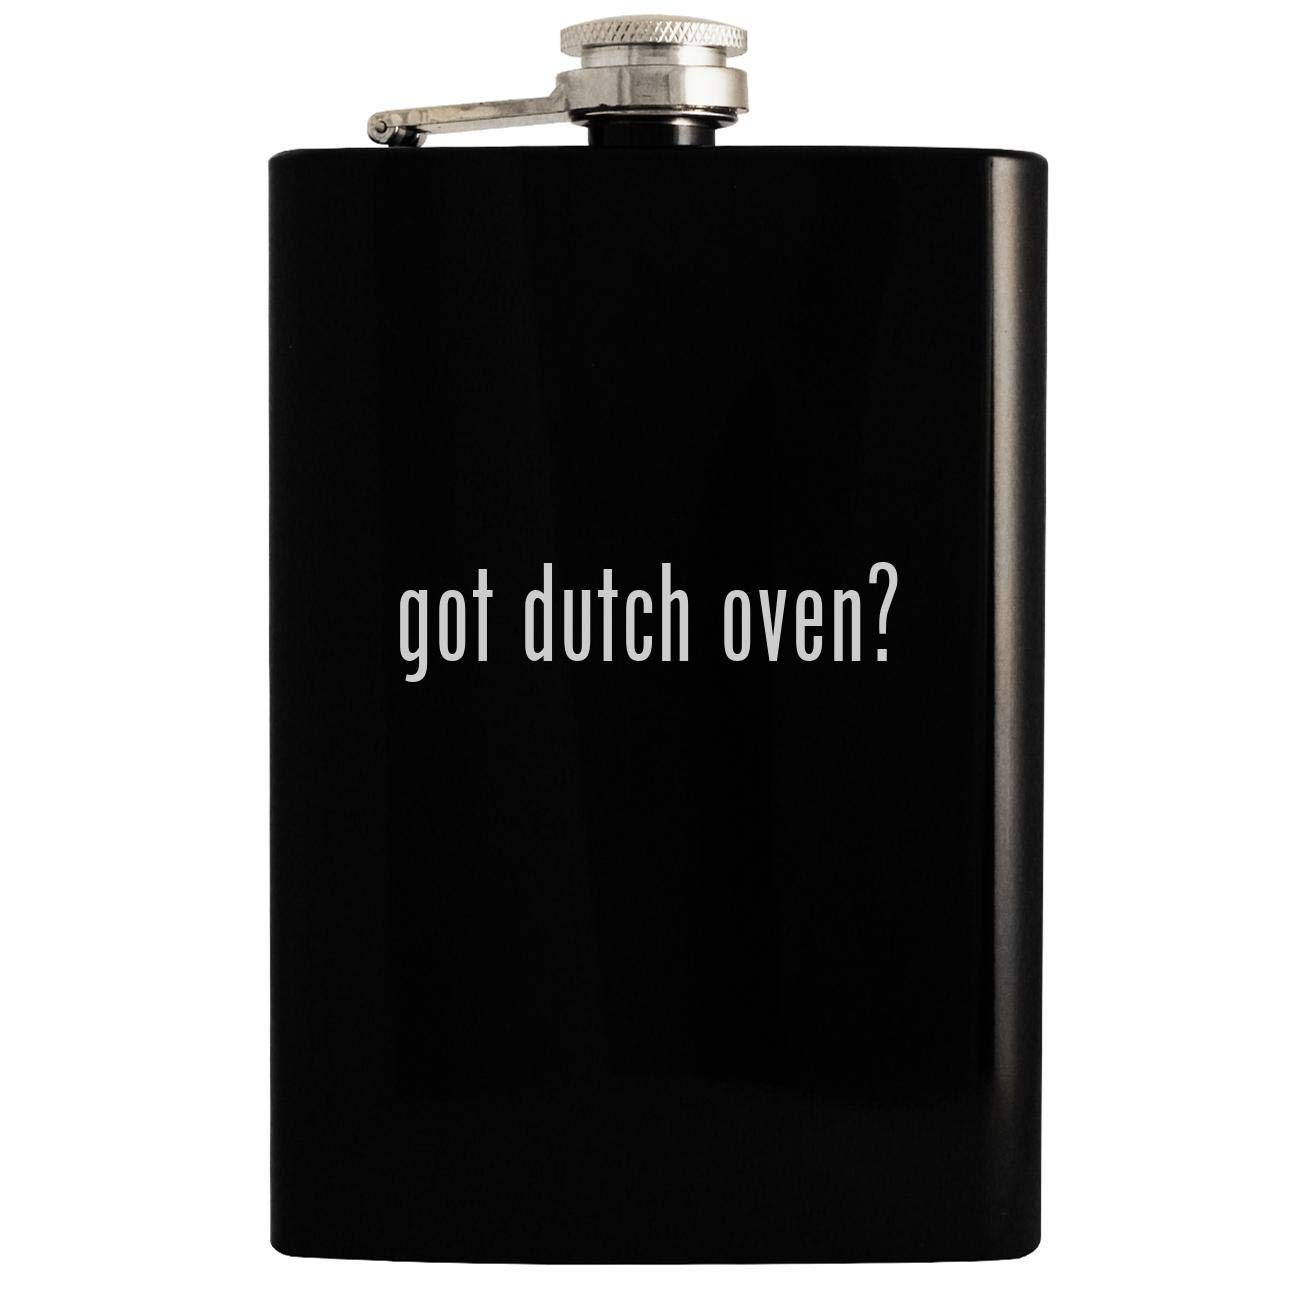 got dutch oven? - Black 8oz Hip Drinking Alcohol Flask